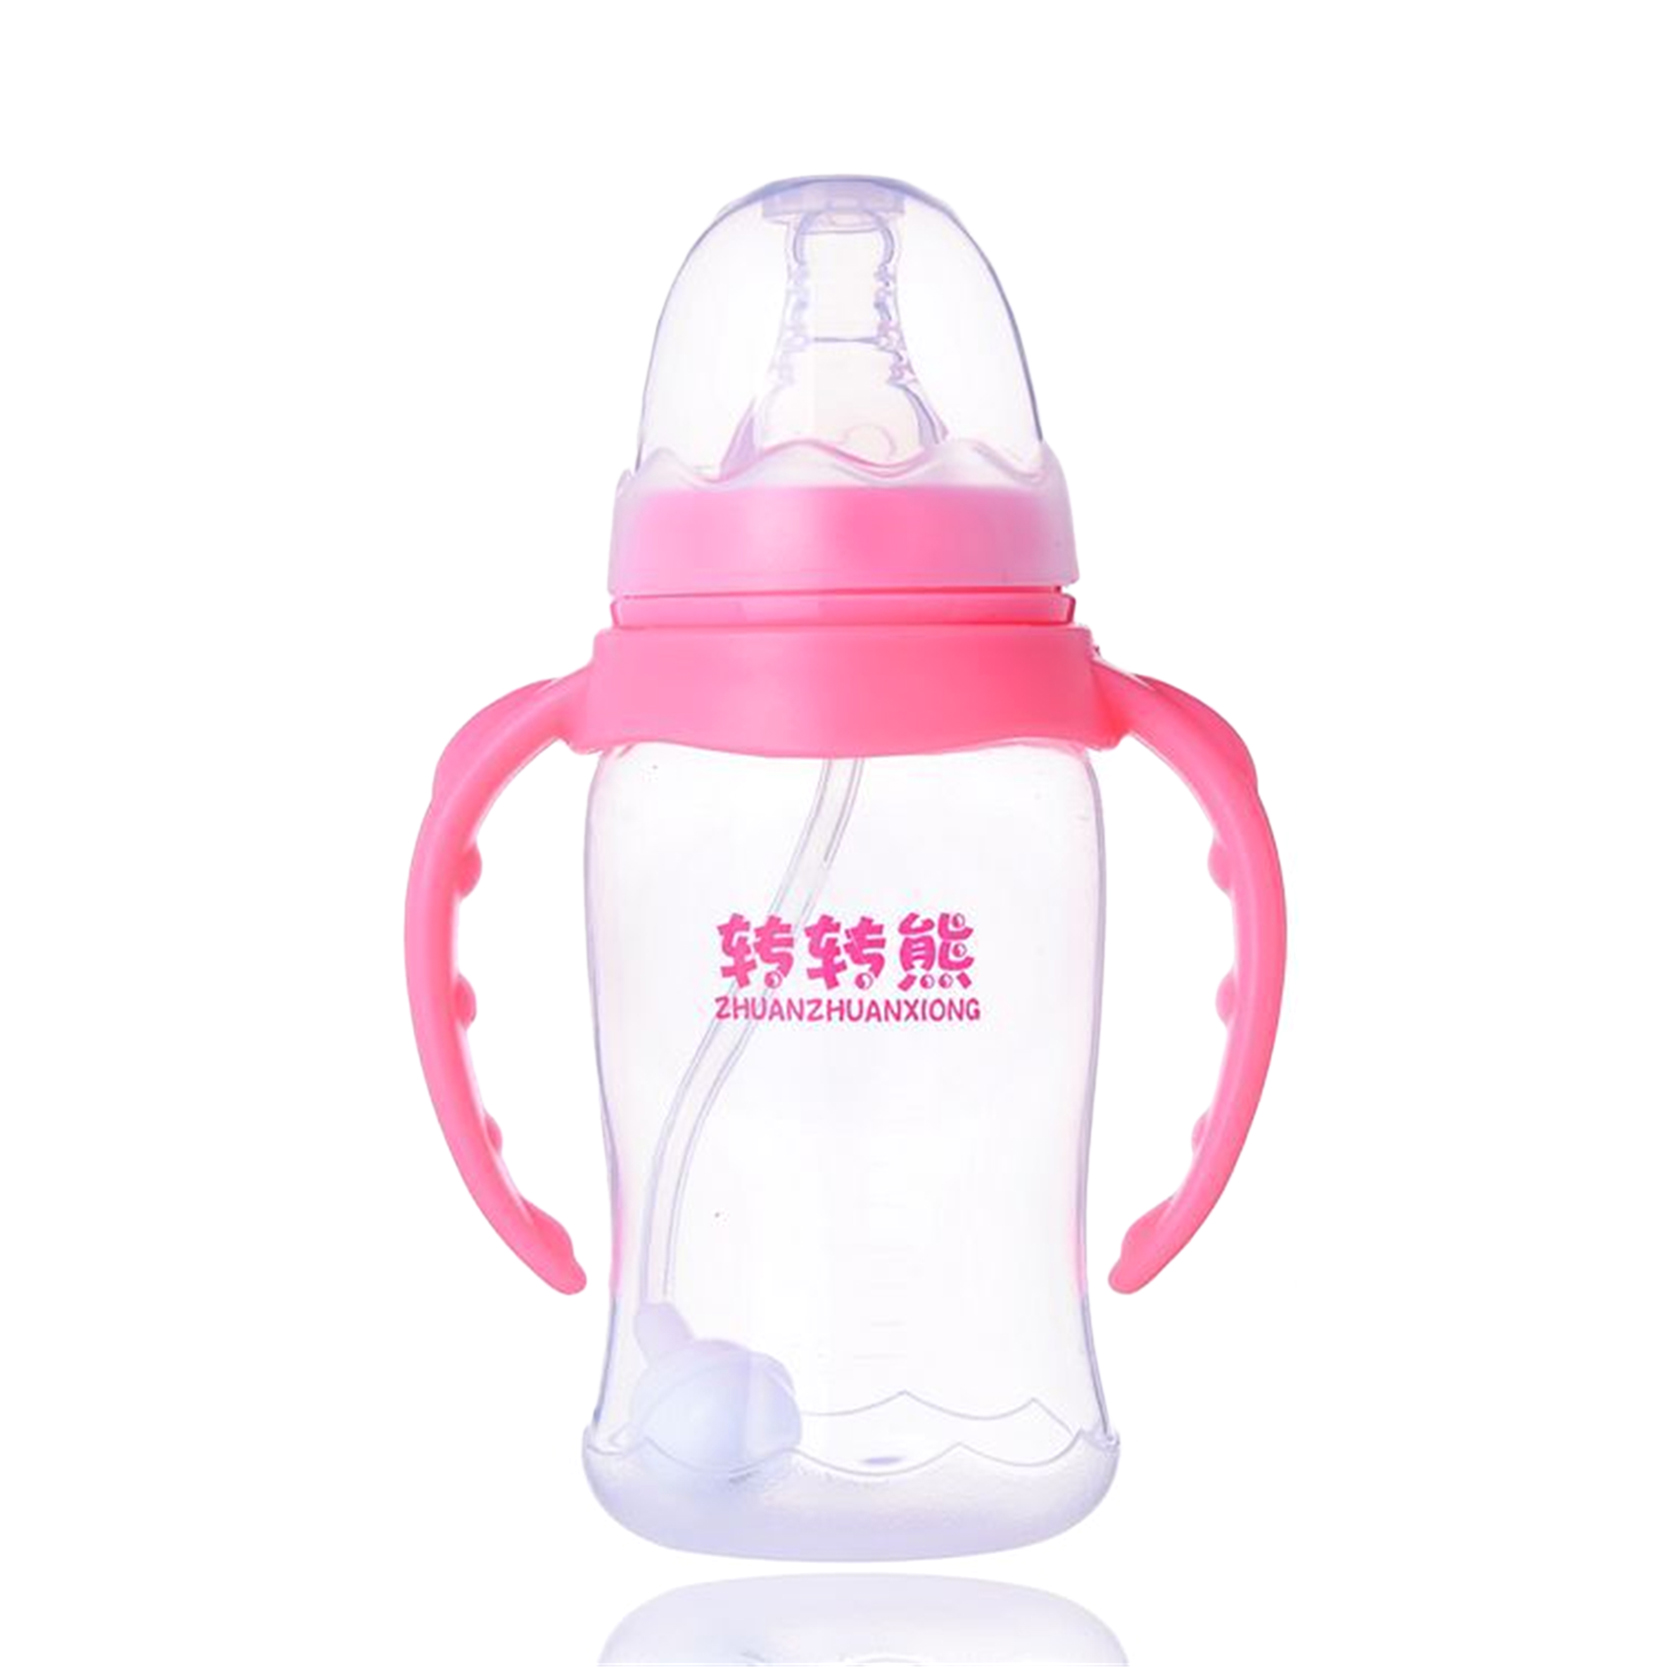 2016 New Arrival Baby Feeding Bottle 3 Color Baby Nursing Bottle High Quality Nipple Water Cup